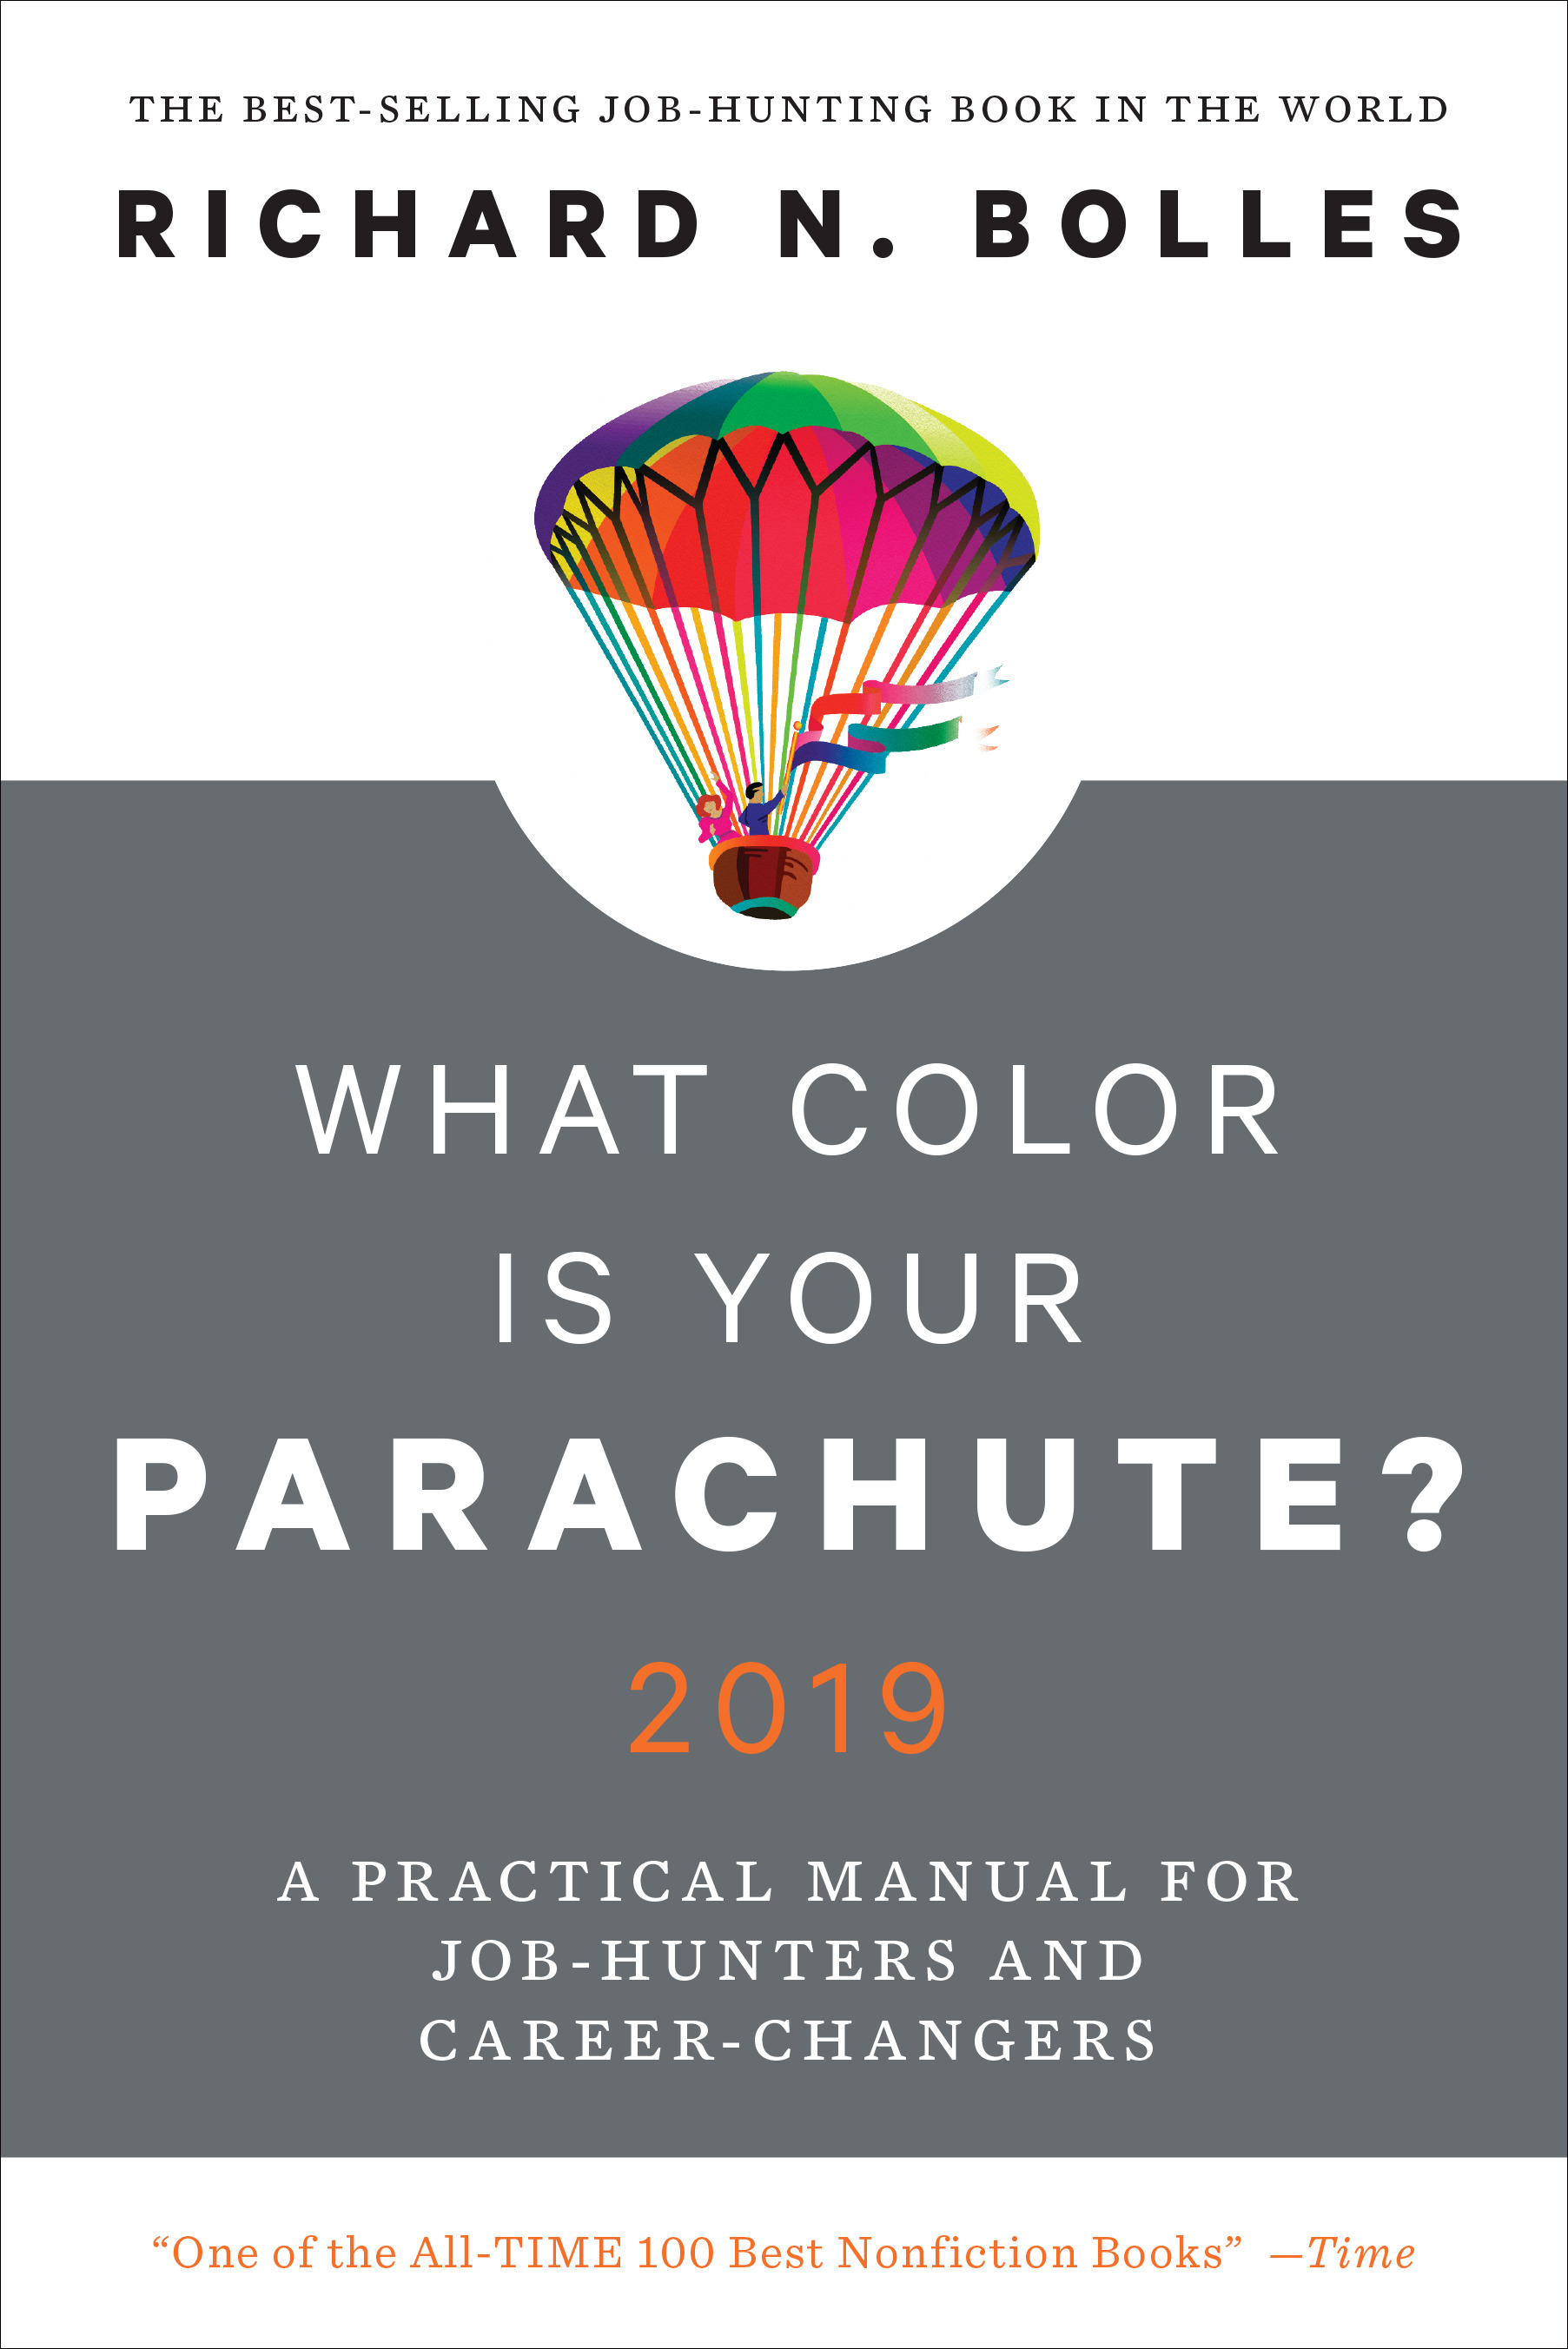 What Color Is Your Parachute? 2019 ed. book cover